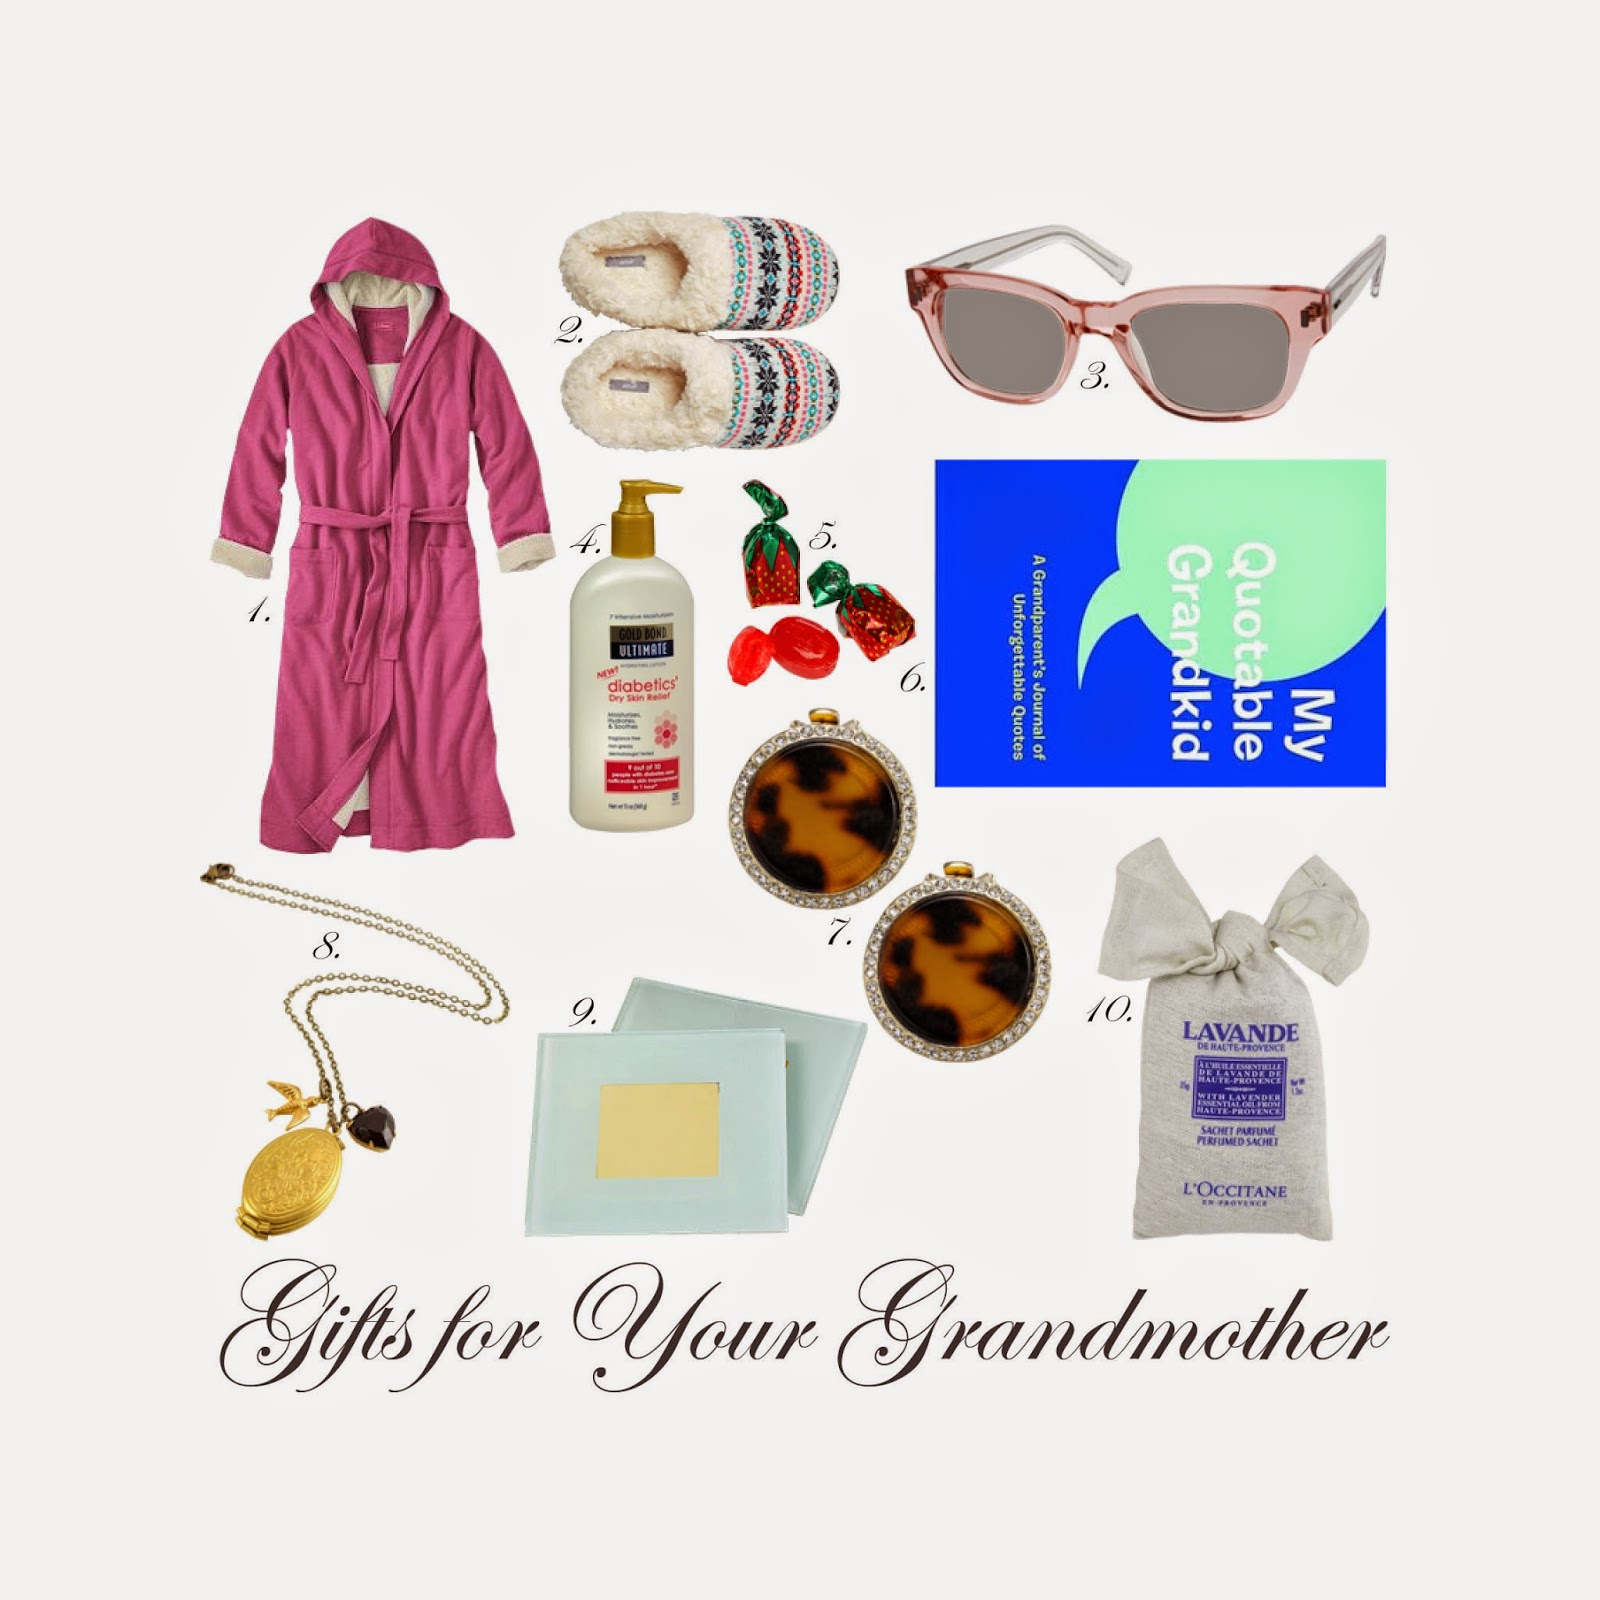 grandmother-gift-guide, gift-ideas-for-your-grandmother, gift-ideas-for-grandmothers, gifts-for-grandmothers